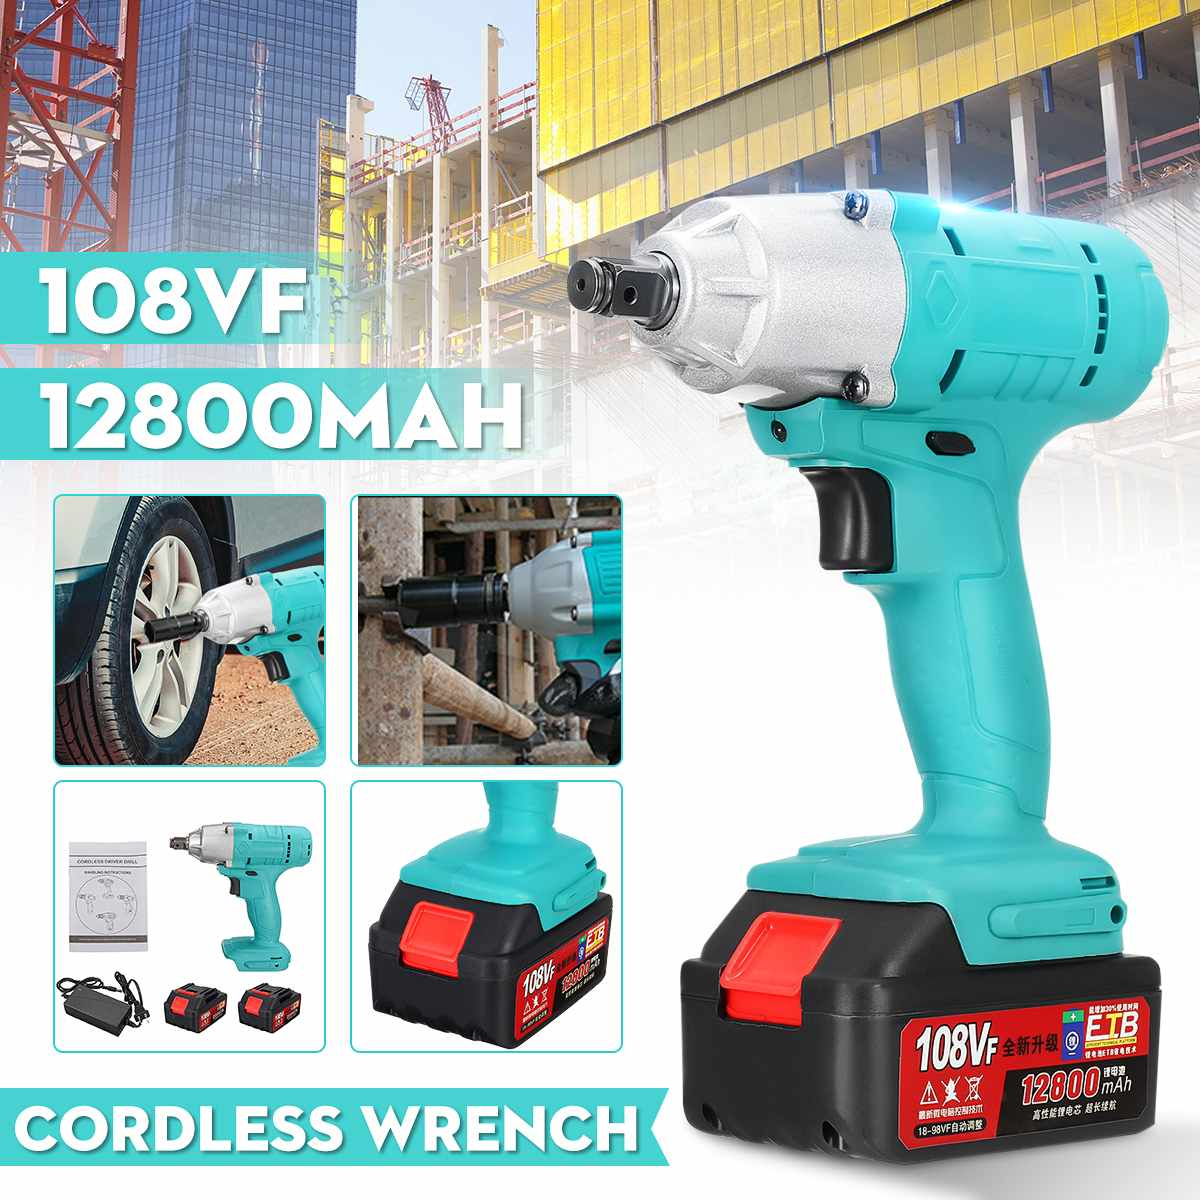 108VF 12800mAh Powerful Cordless Electric Impact Wrench G-un 1/2'' Driver 320Nm With Rechargeable Li-ion Battery